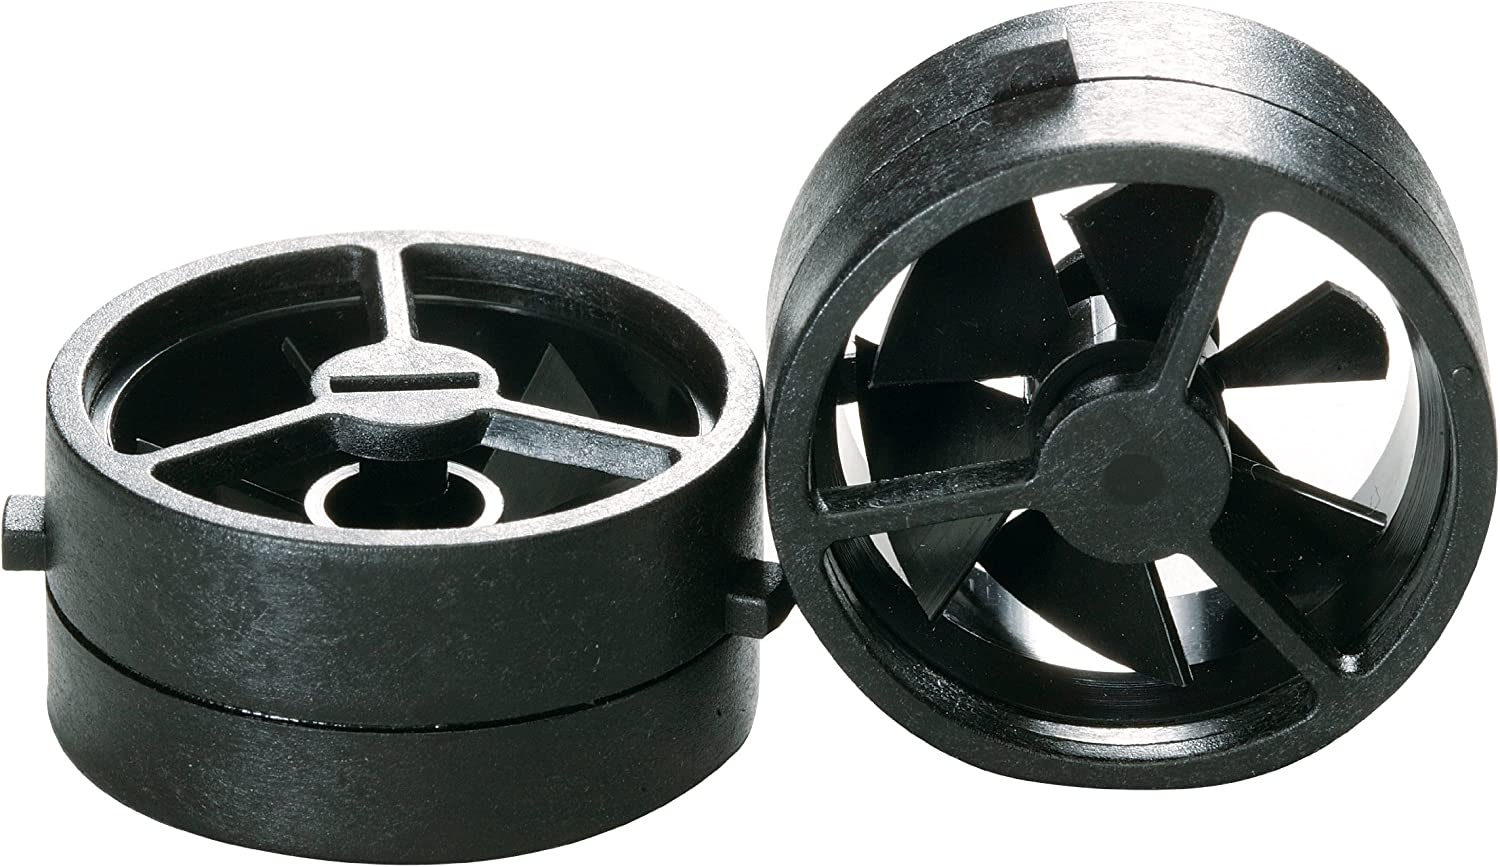 Extech 45116 Replacement Impeller for Extech 45118 Anemometer